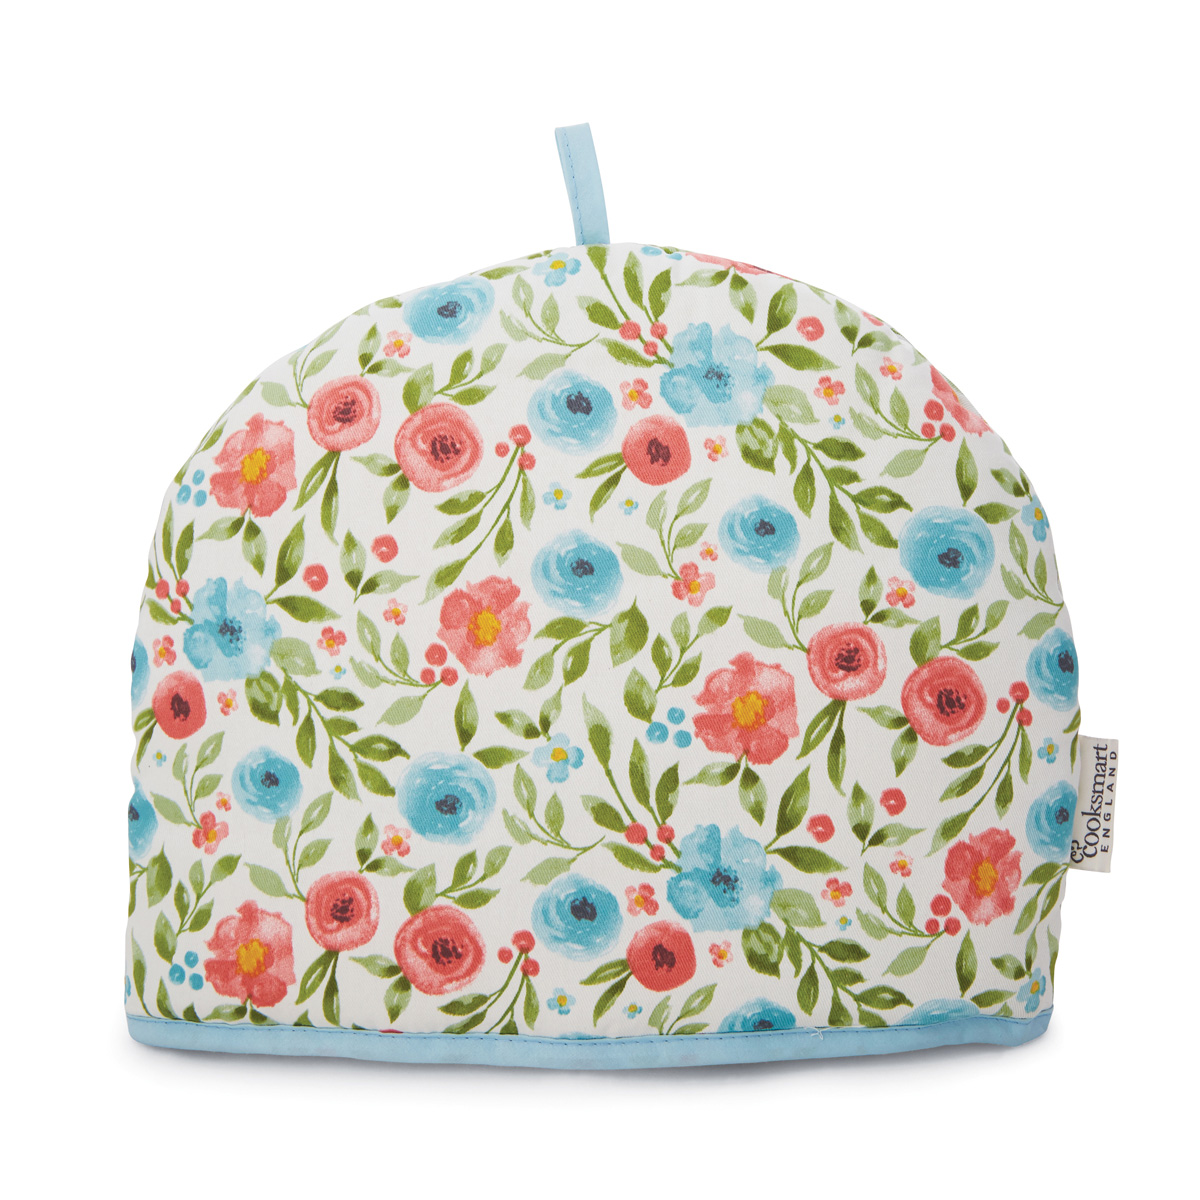 Cooksmart Tea Cosy 100/% Cotton Teapot Insulated Cover Warmer Kitchen